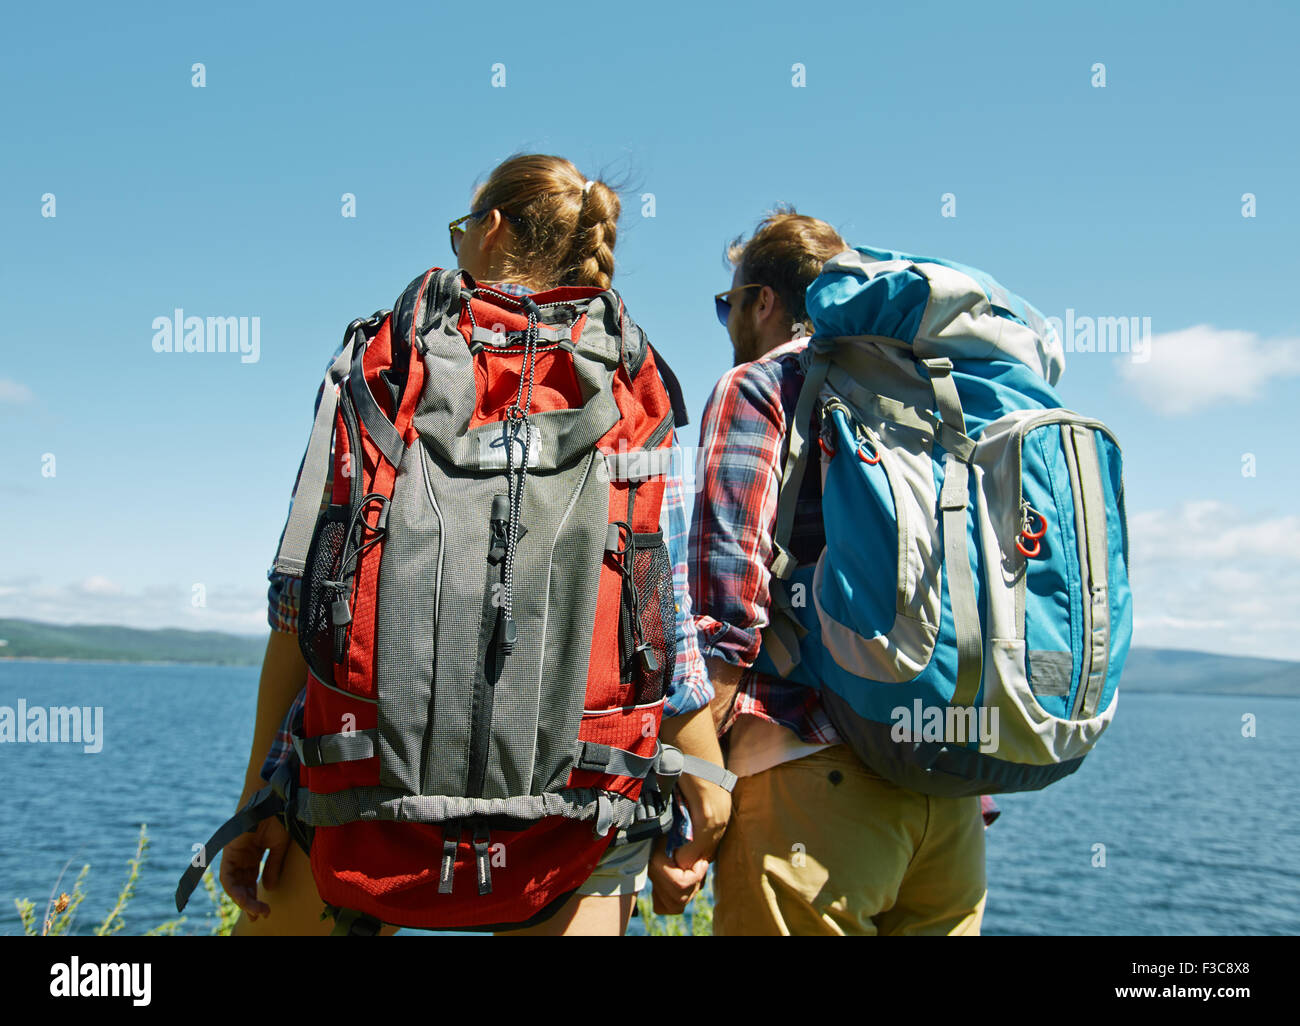 Couple of young hikers with backpacks looking at sea - Stock Image